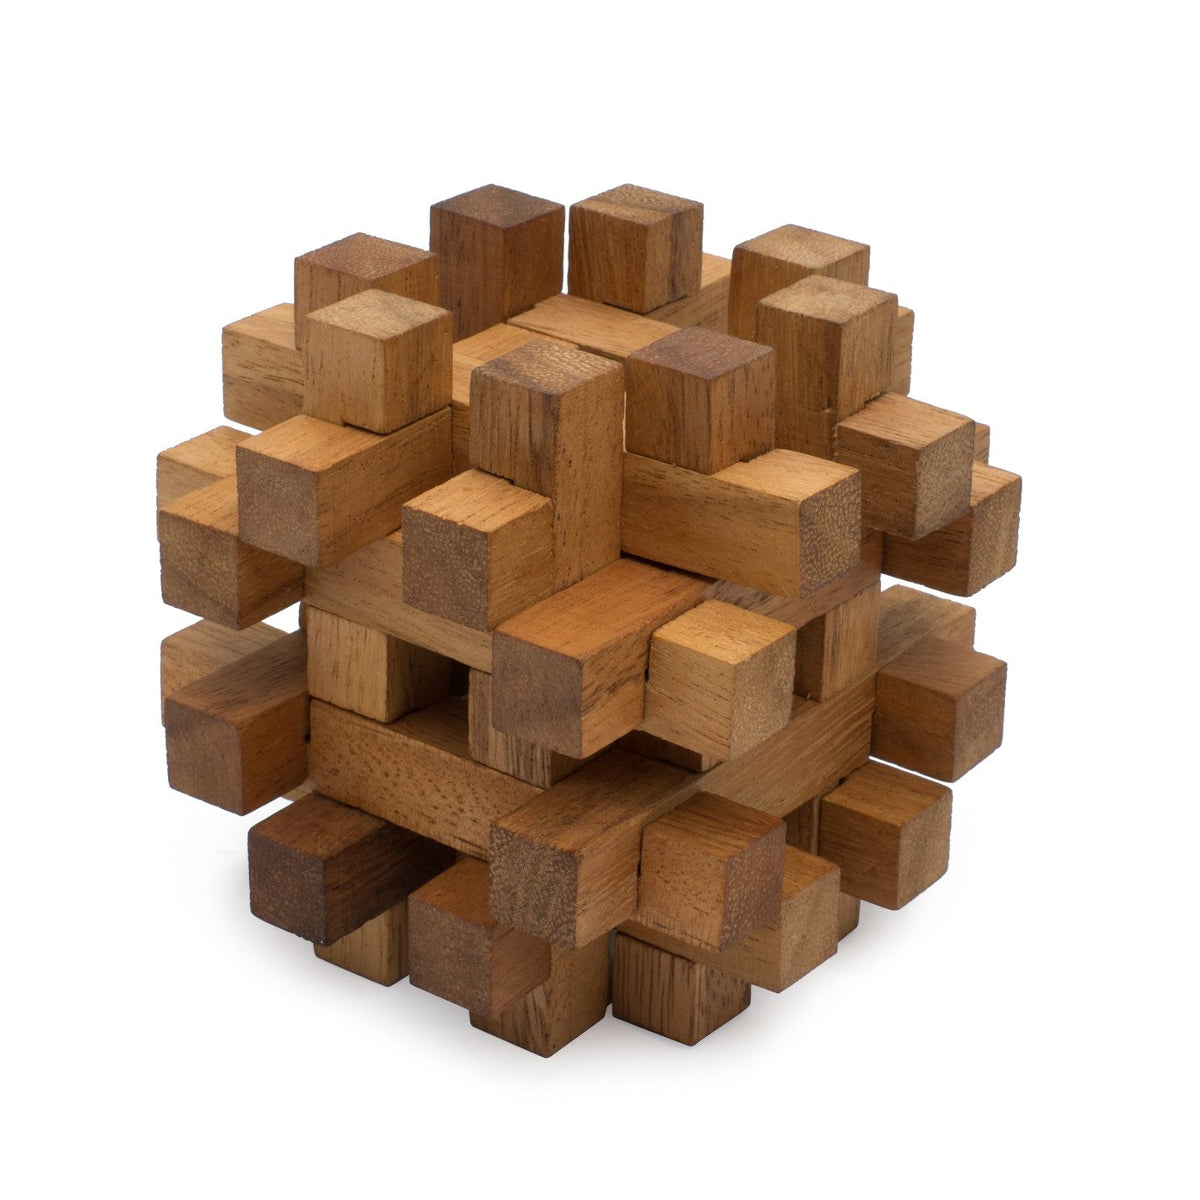 Wooden Puzzles | Wood Brain Teasers | 3D Puzzles